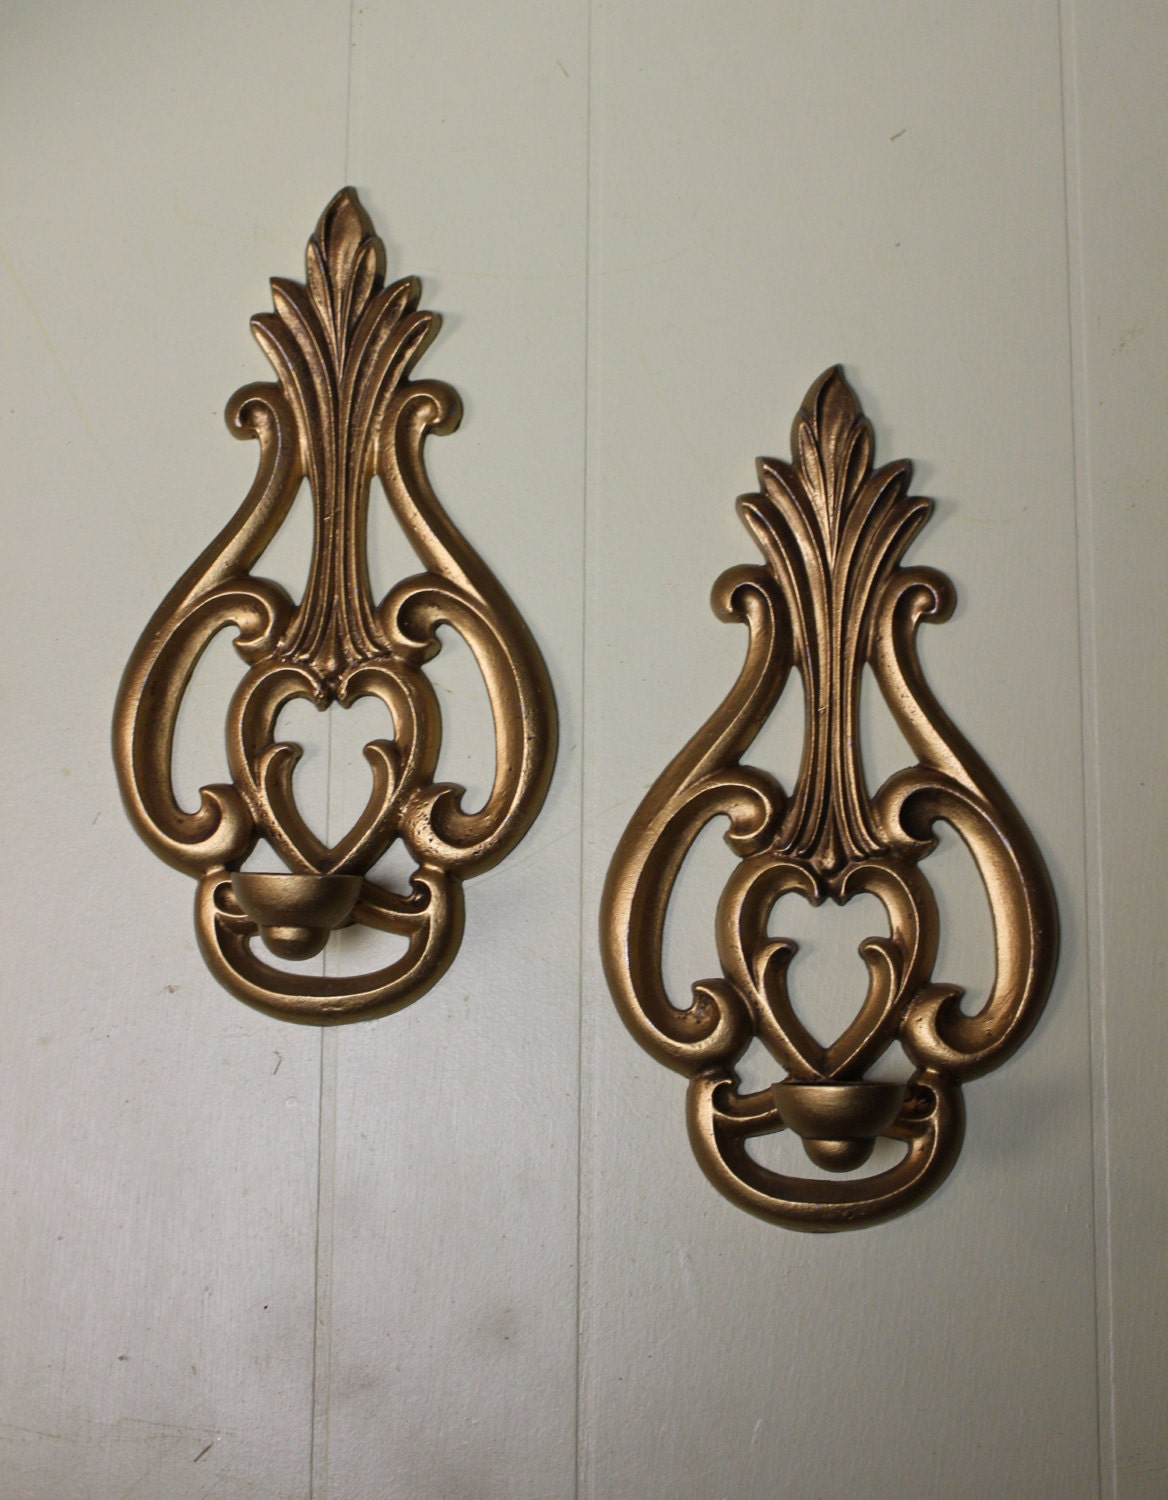 Metal Wall Decor Candle Holder : Metal wall candle holders pair